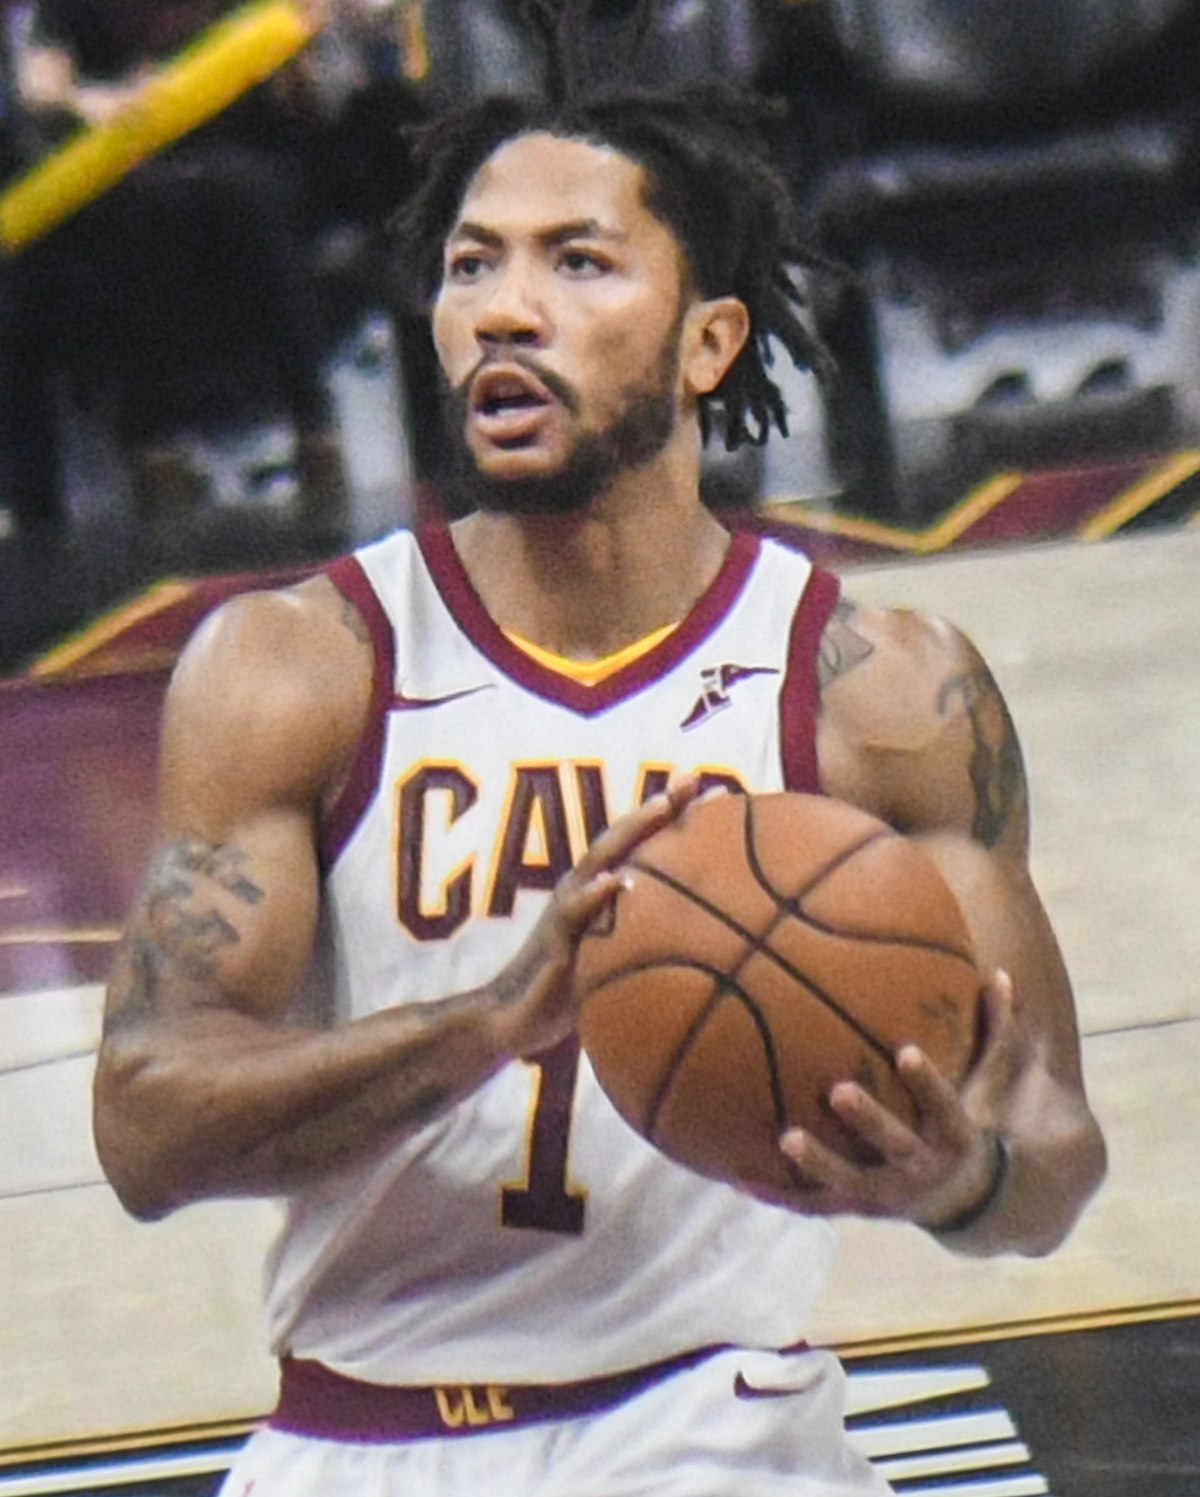 Derrick rose wikipedia - Derrick rose cavs wallpaper ...